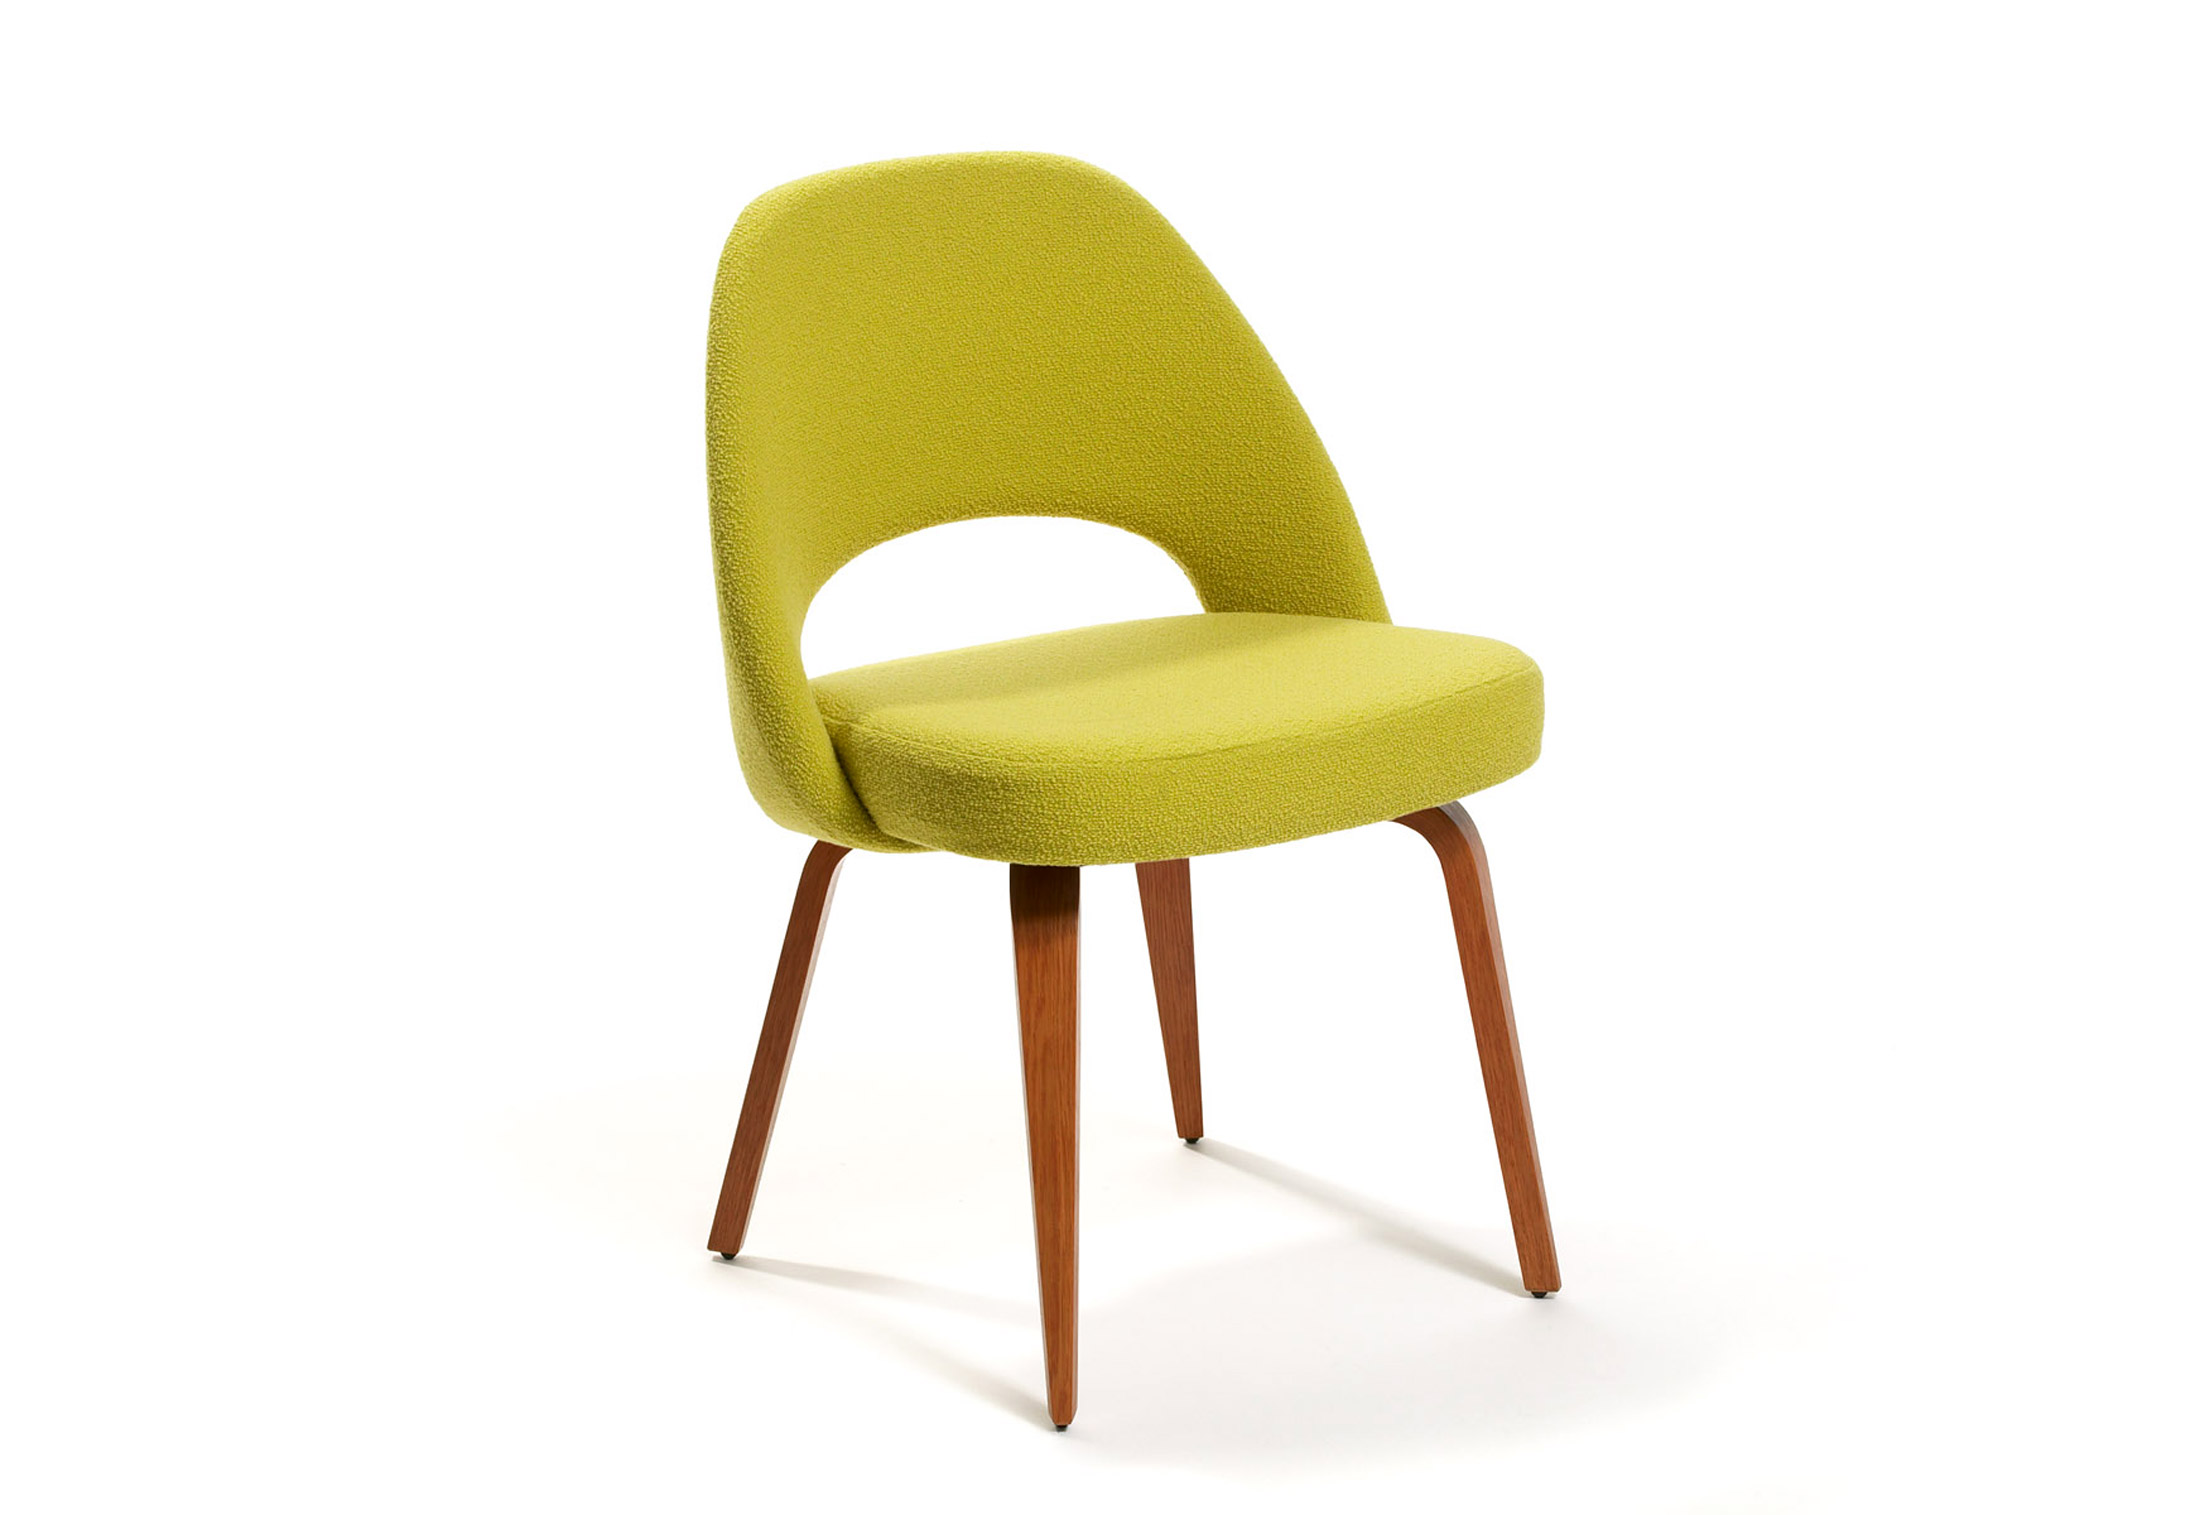 Saarinen executive conference chair 2 by knoll stylepark - Sedia tulip knoll ...